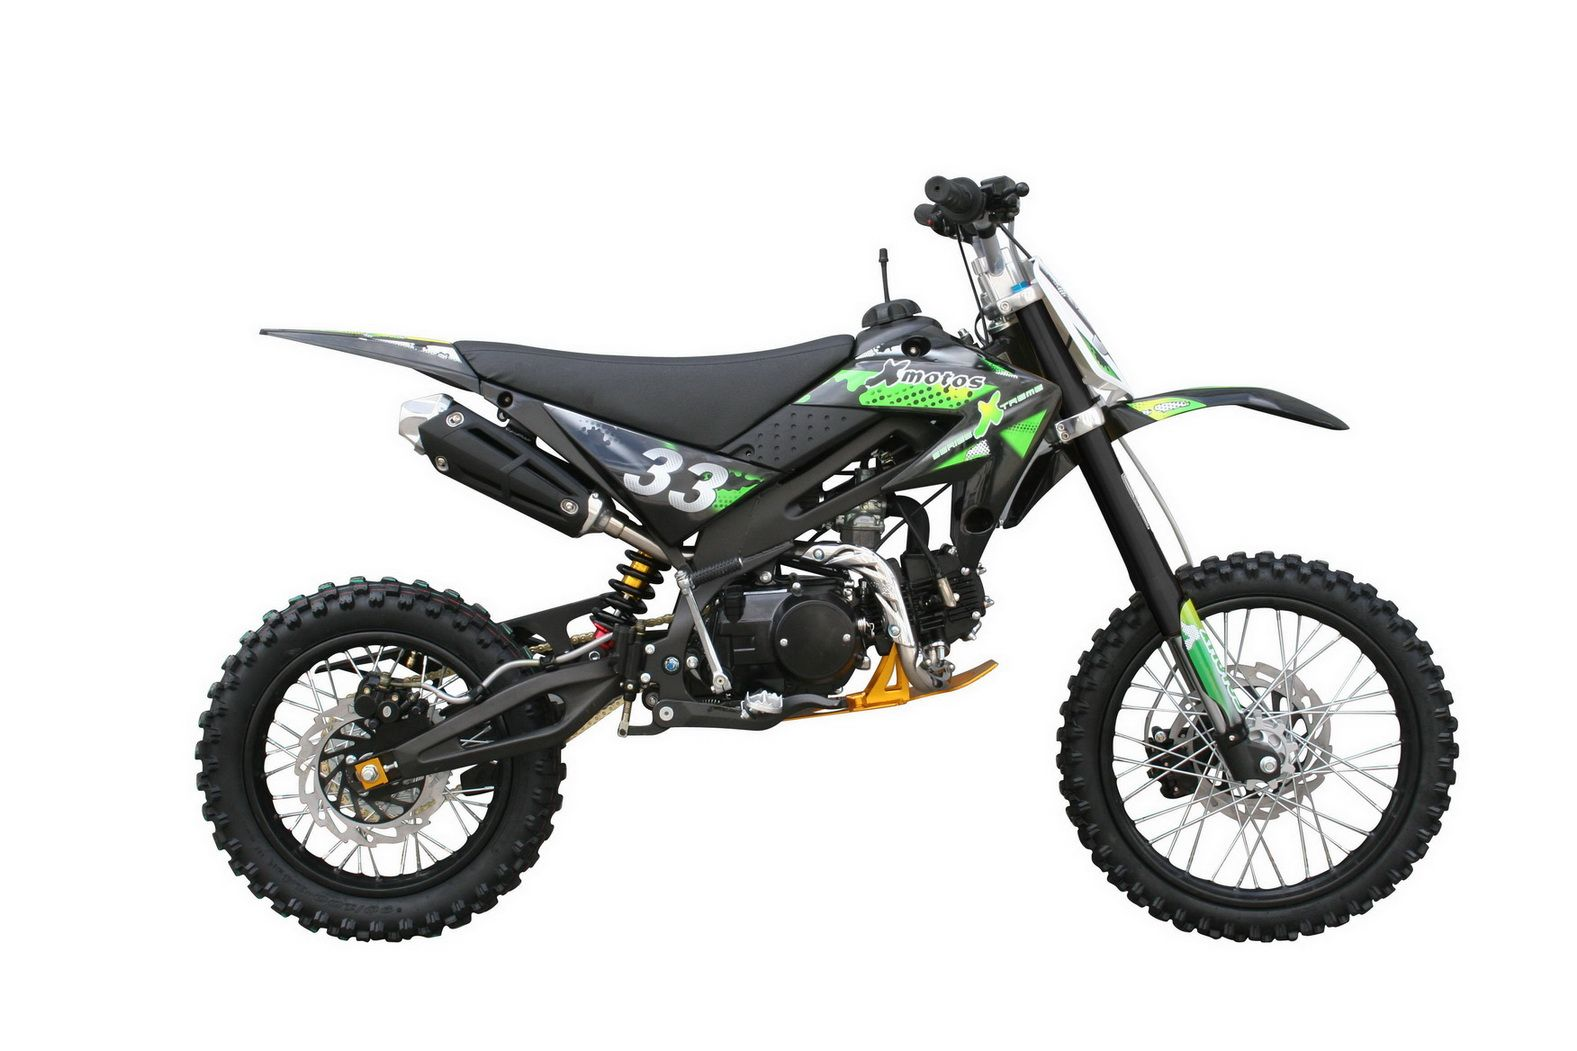 dirt bike xtr125 xb 33 125cc green black cars and autos. Black Bedroom Furniture Sets. Home Design Ideas